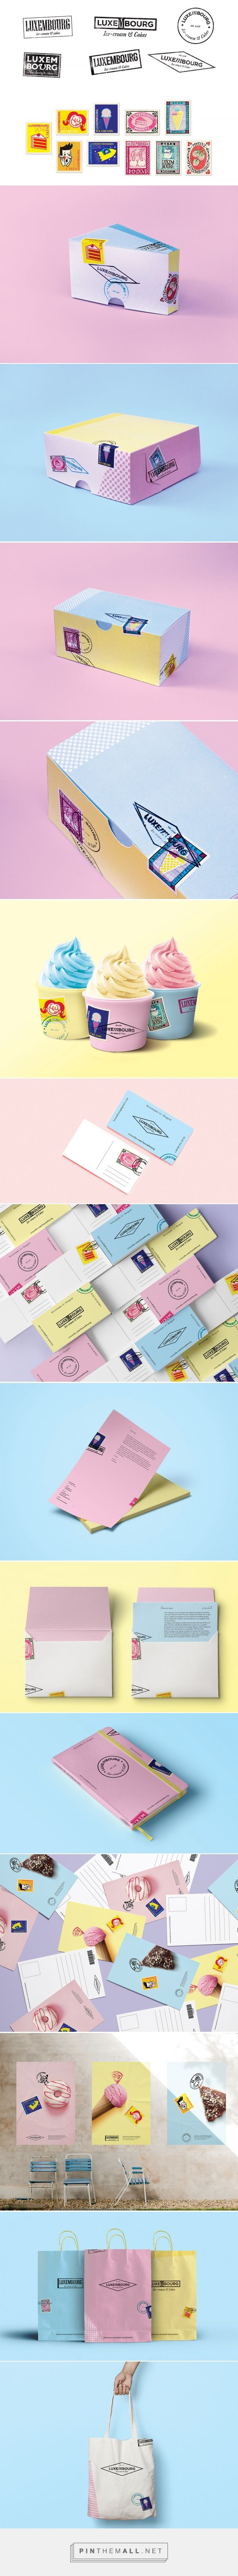 Luxembourg Ice Cream and Cakes Branding and Packaging by Jasmina Zornic | Fivestar Branding Agency – Design and Branding Agency & Curated Inspiration Gallery